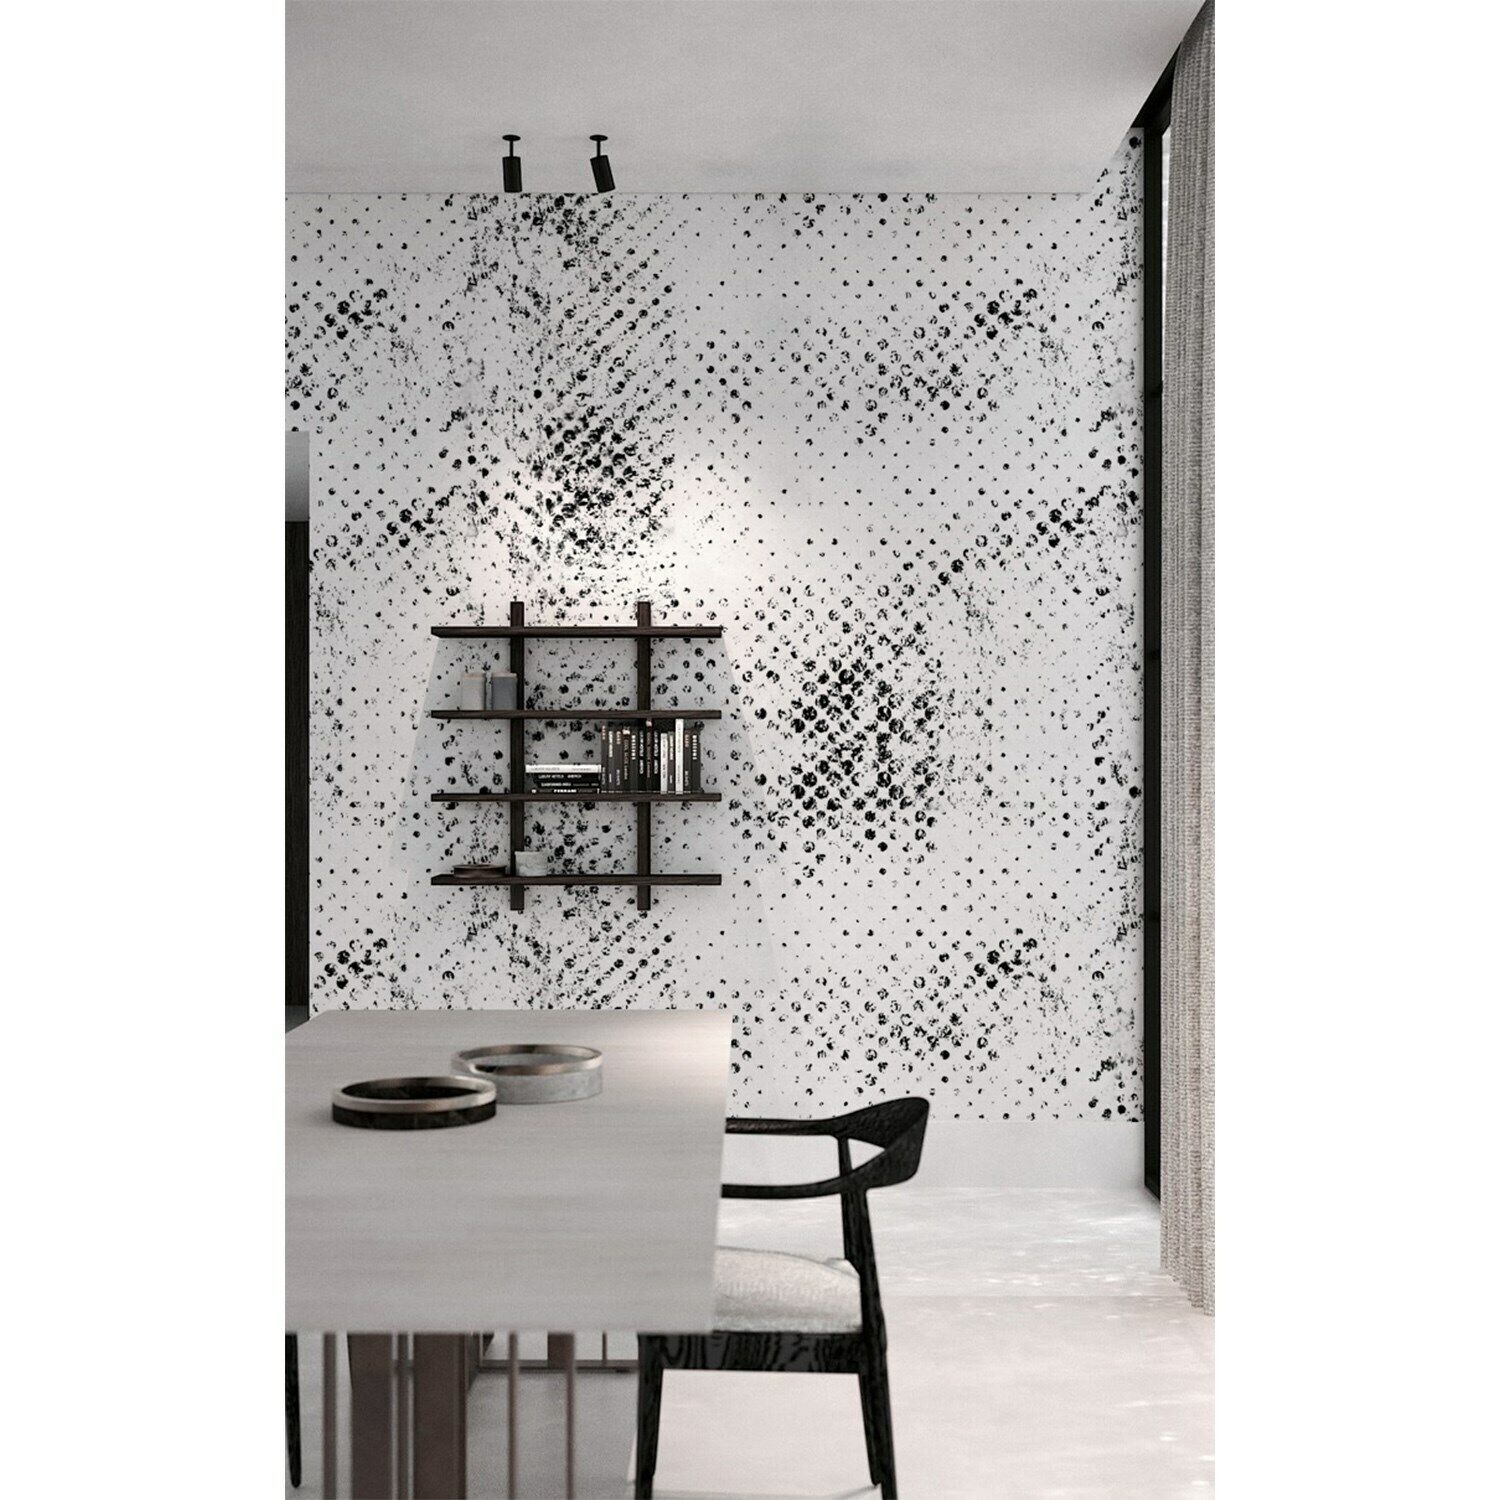 Grunge dots wall Home Mural Polka Non-Woven wallpaper Roll Minimalist Decor